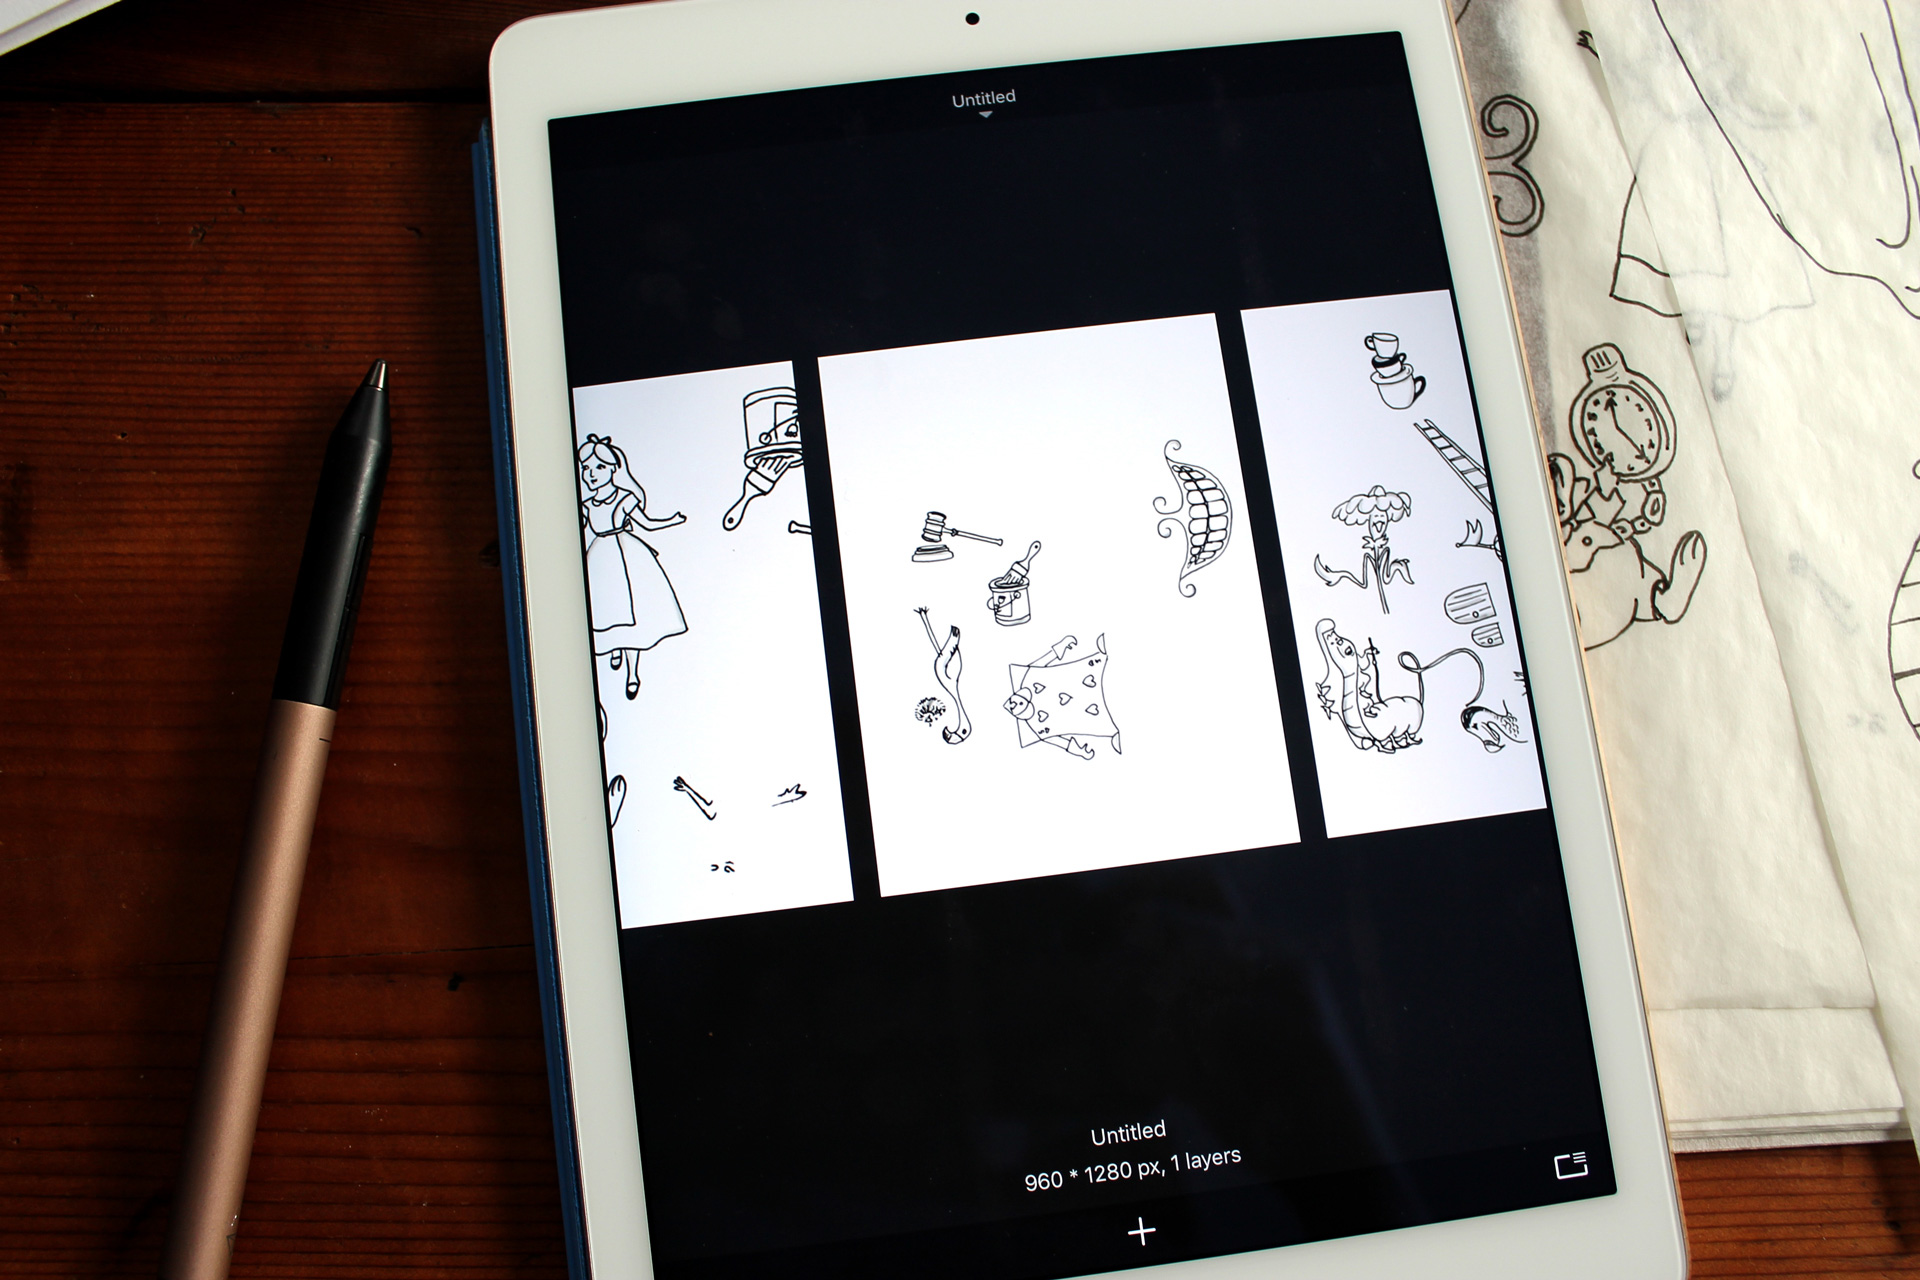 iPad showing sketches next to tracing paper and a gold stylus